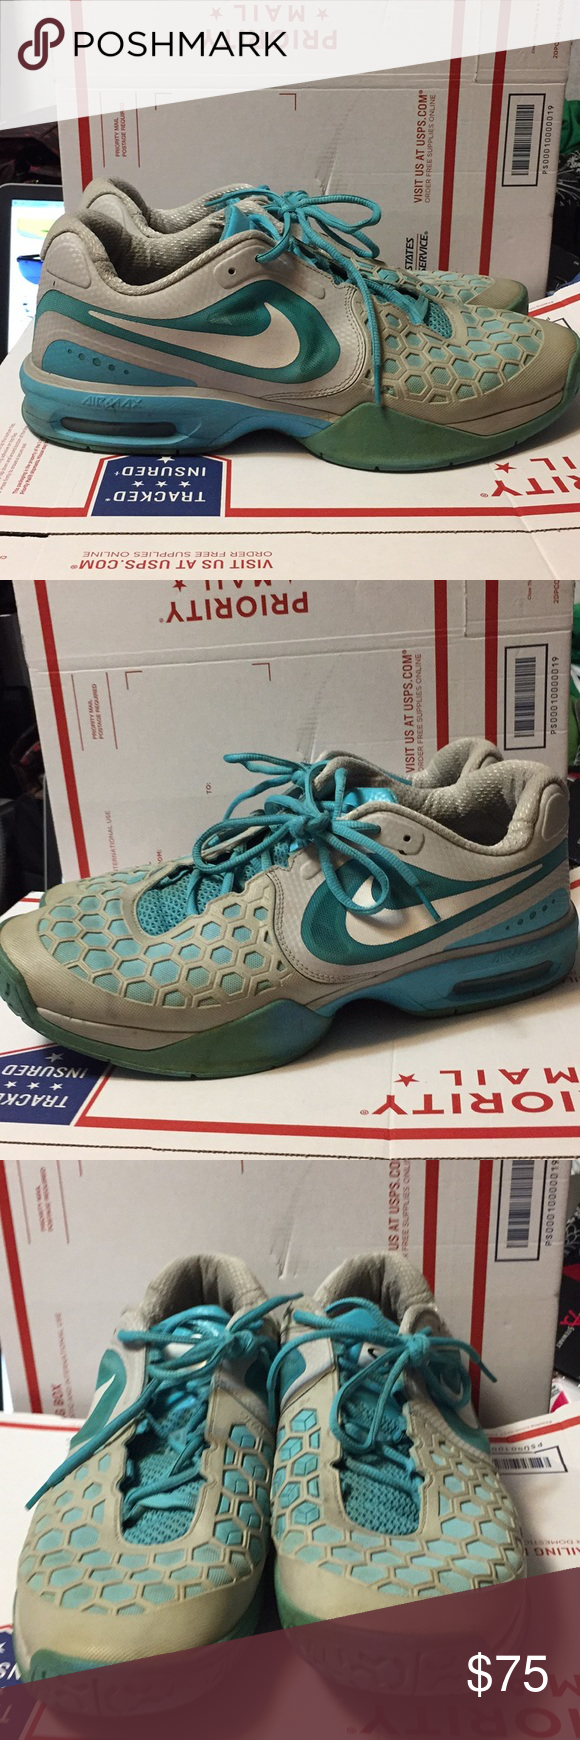 promo code ea893 fde16 Nike Air Max Courtballistec 4.3 SZ 12.5 SZ 12.5 only tears in one of the  shoelace hooks on the right sneaker. In overall great shape. Turquoise Blue  and ...